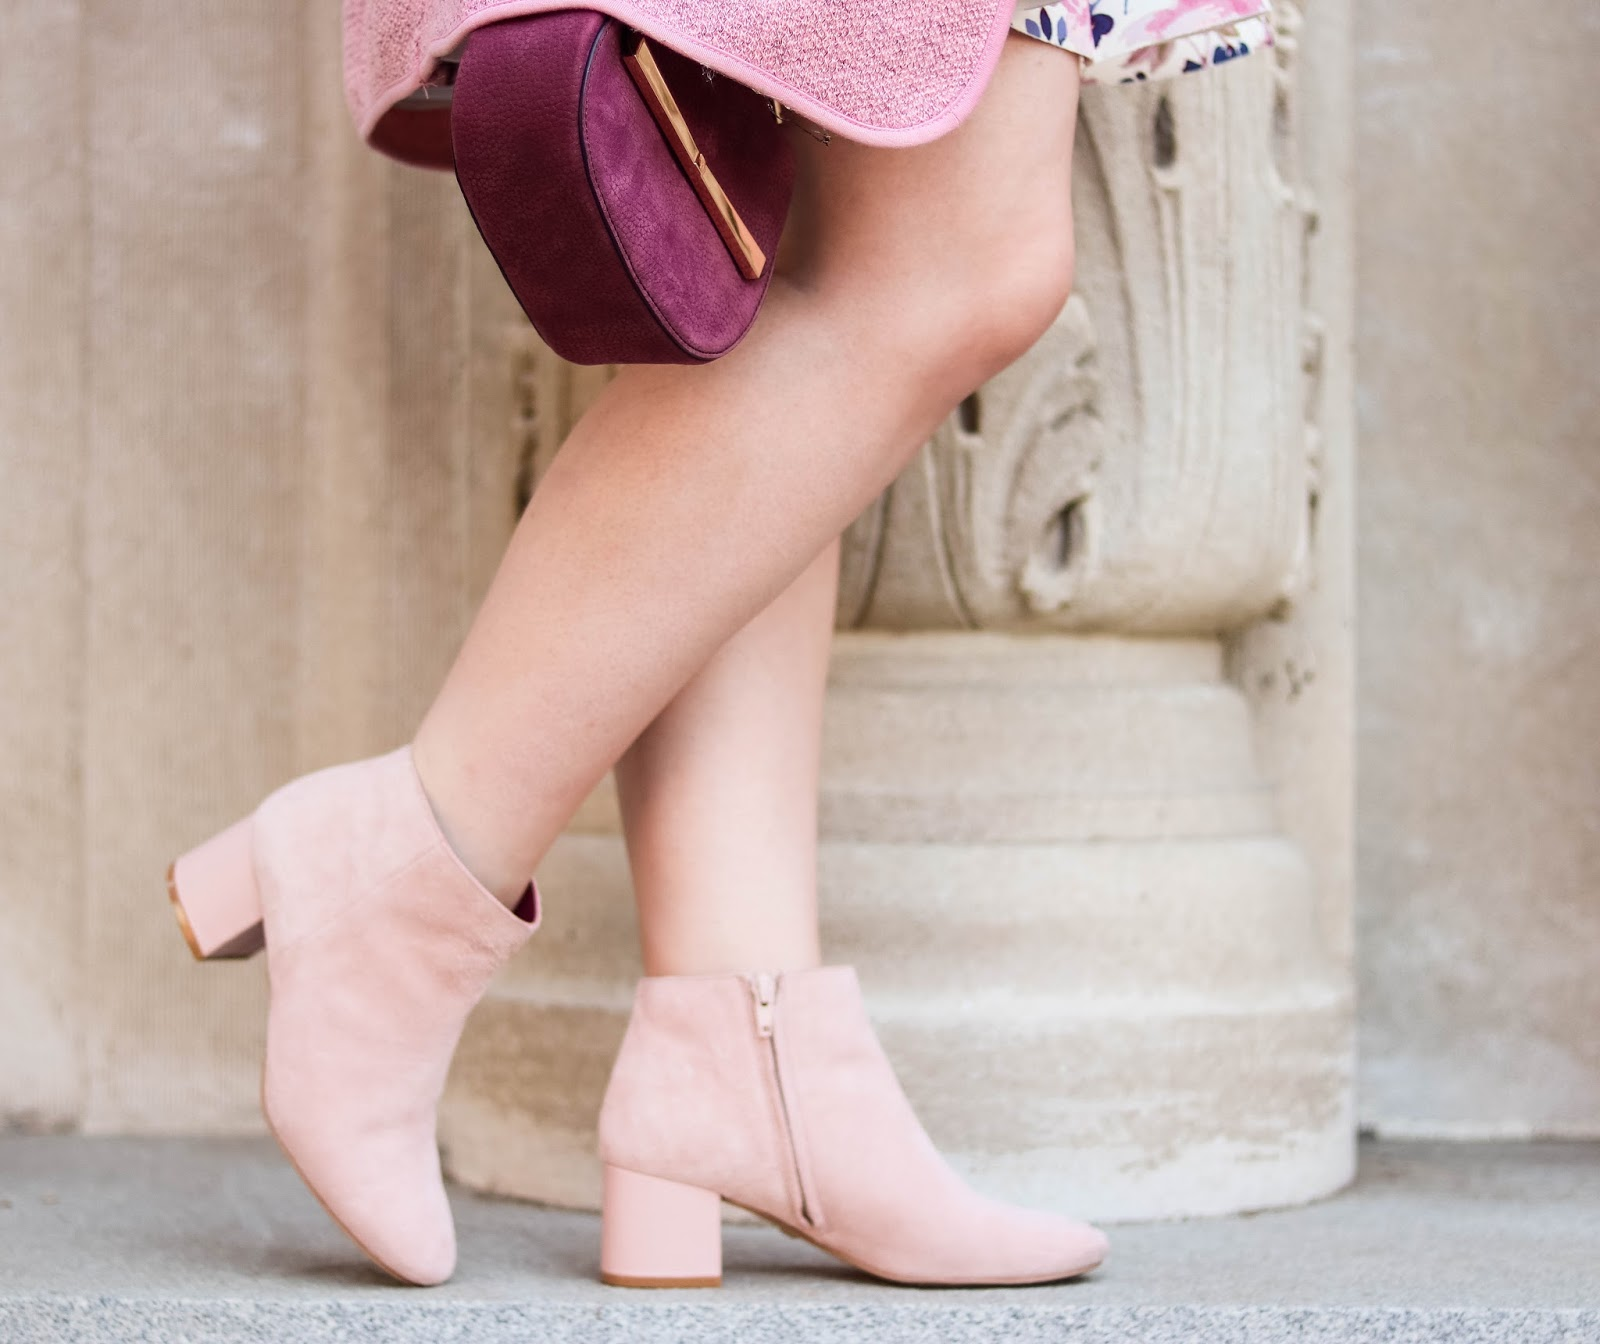 Shoes of Prey Review by popular California style blogger Lizzie in Lace